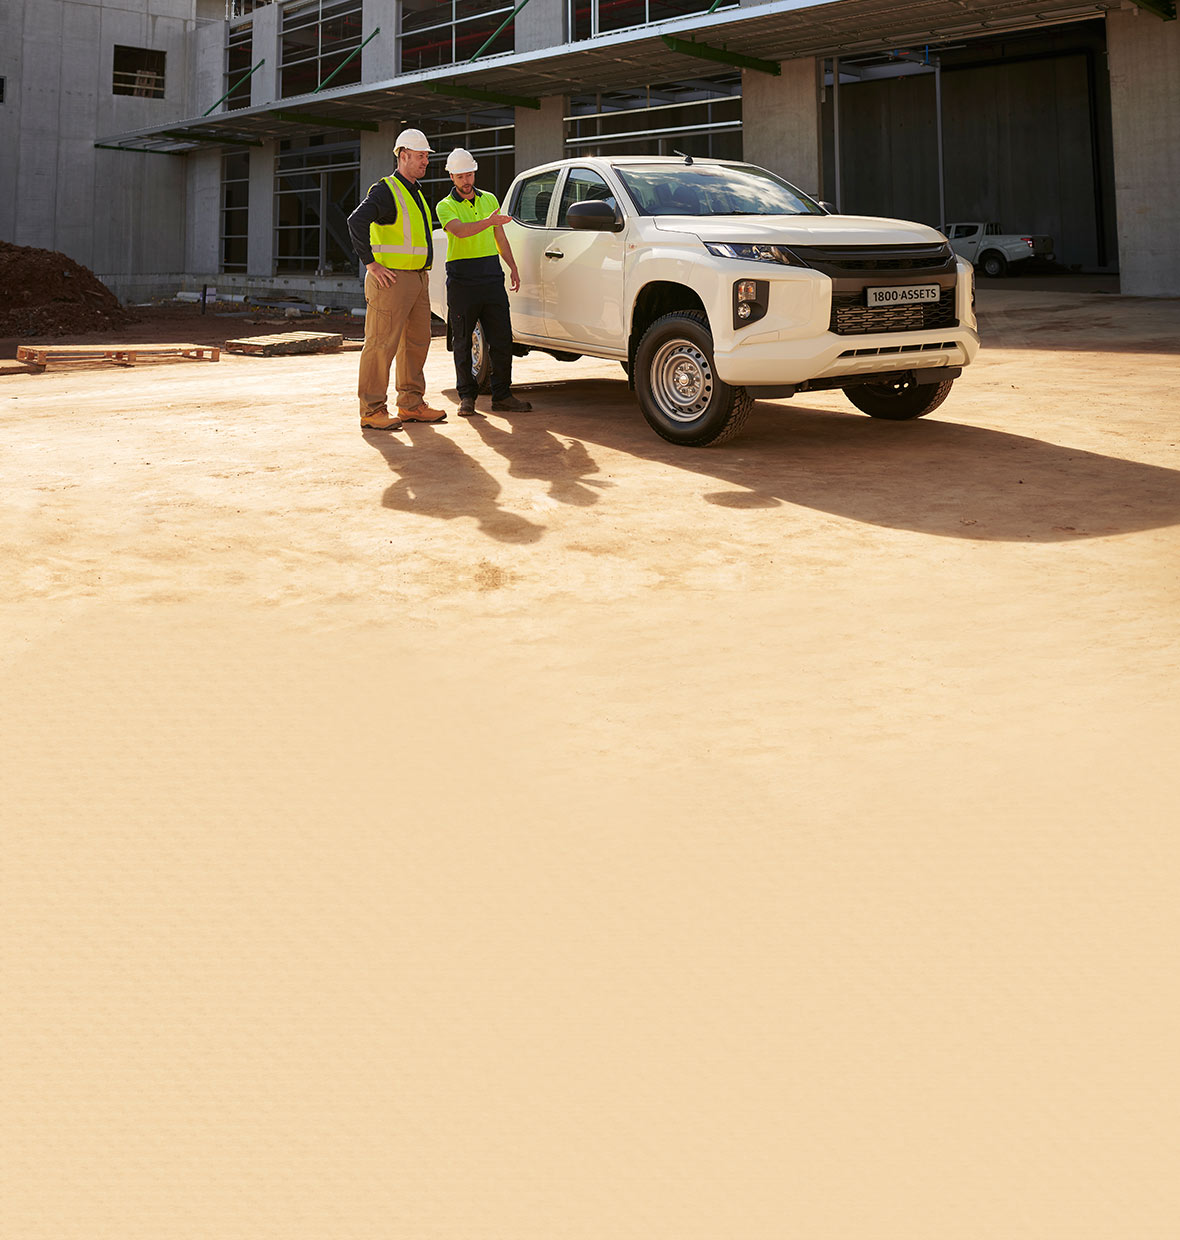 Two tradies stand triumphantly in front of a newly financed ute.